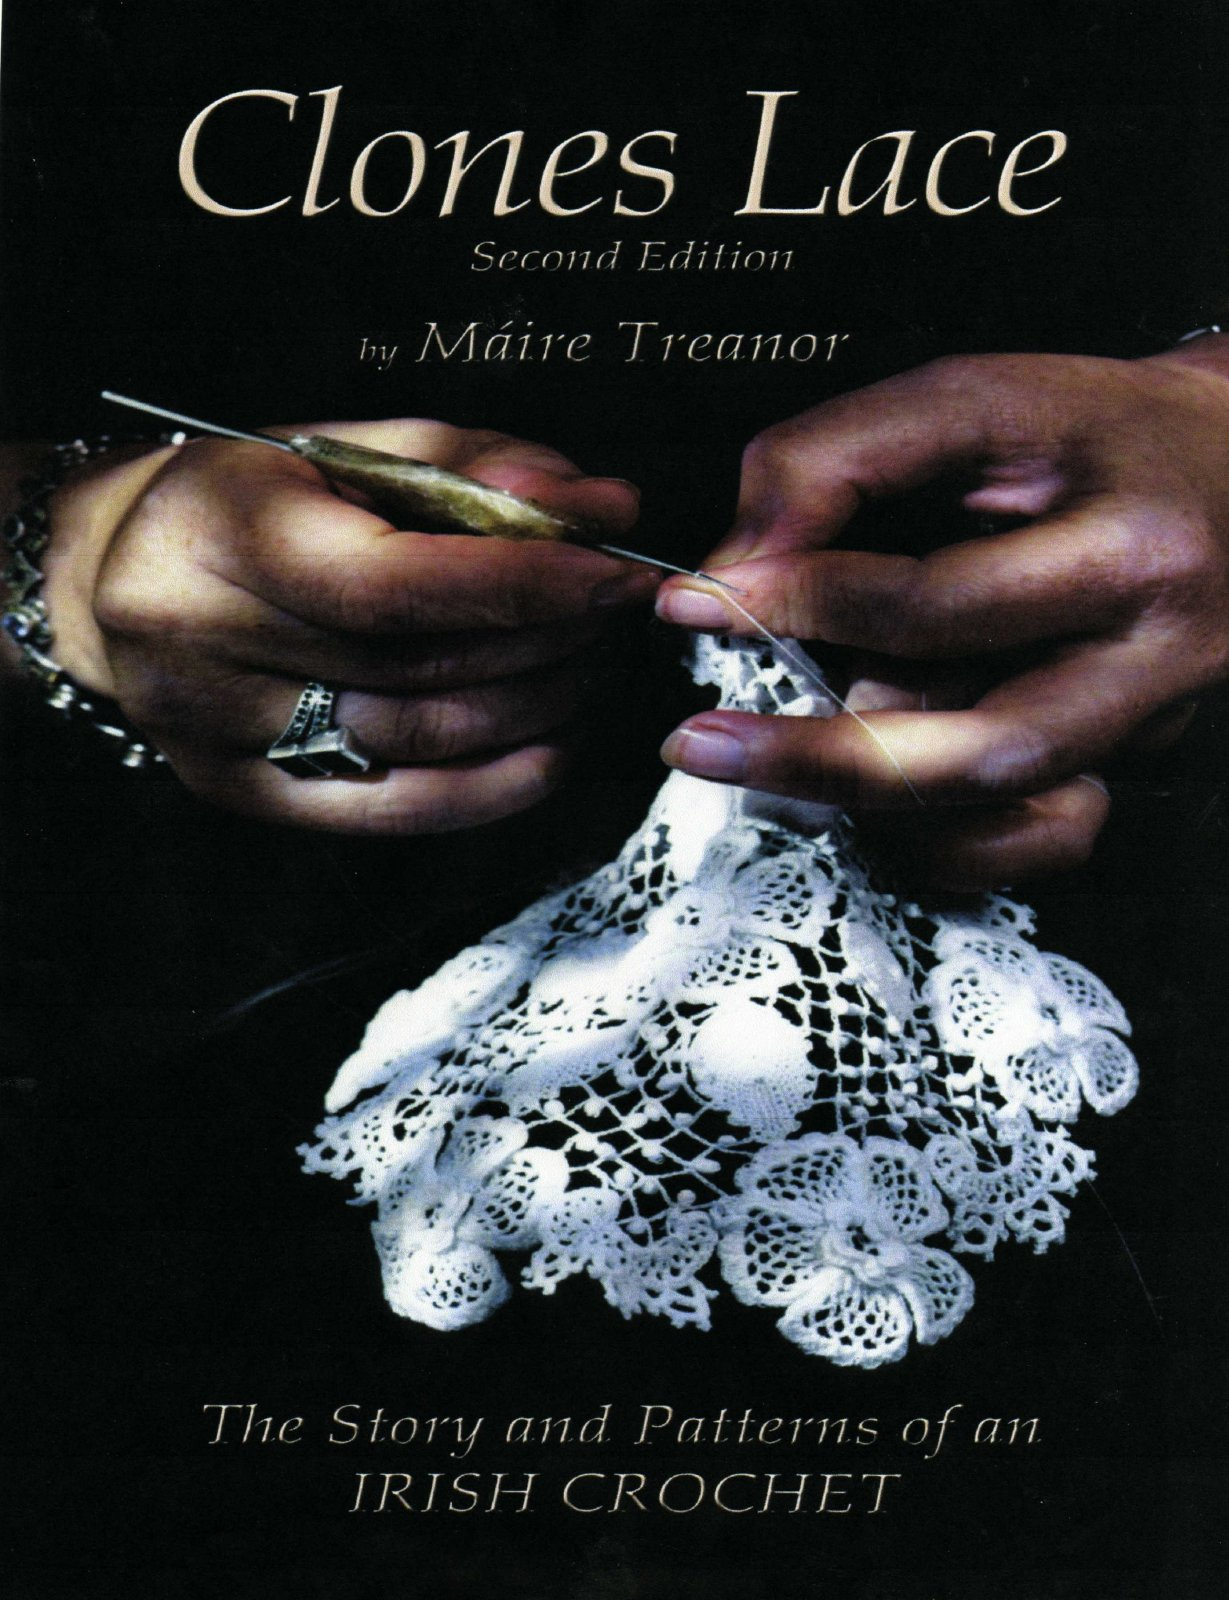 Clones Lace: Story and Patterns of an Irish Crochet 2nd Edition by Maire Treanor